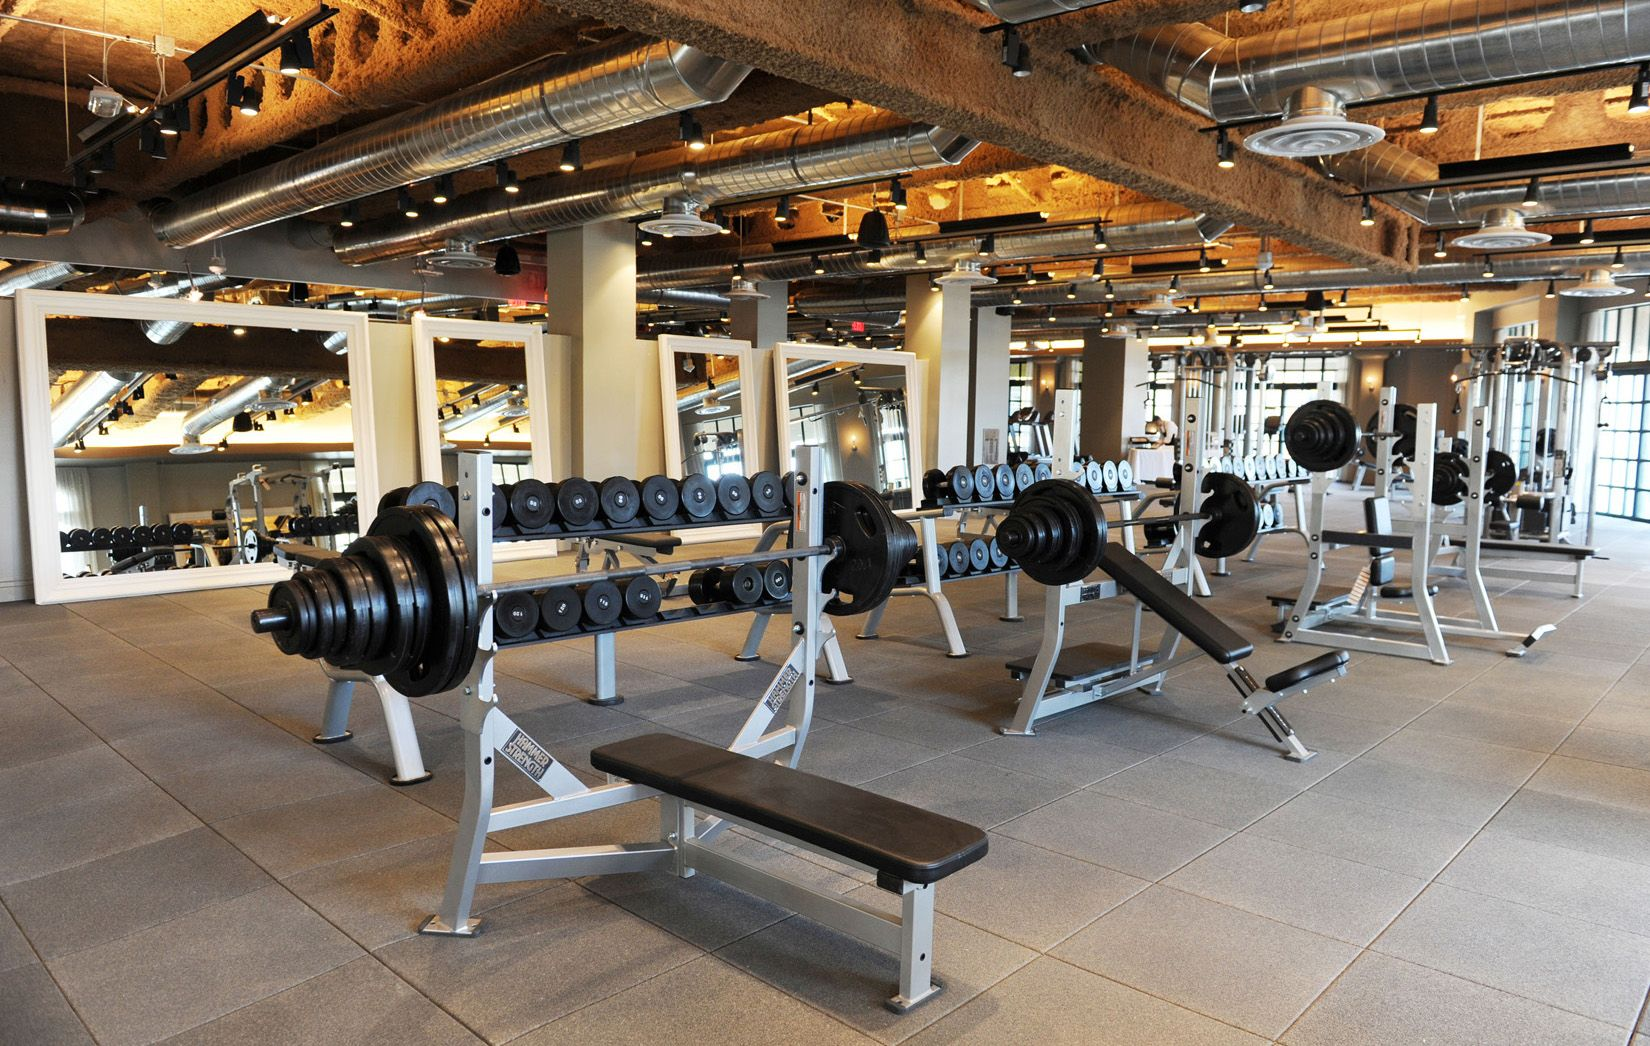 David Barton Gym | Wolcott Architecture | Interiors | Studio/Gym ...